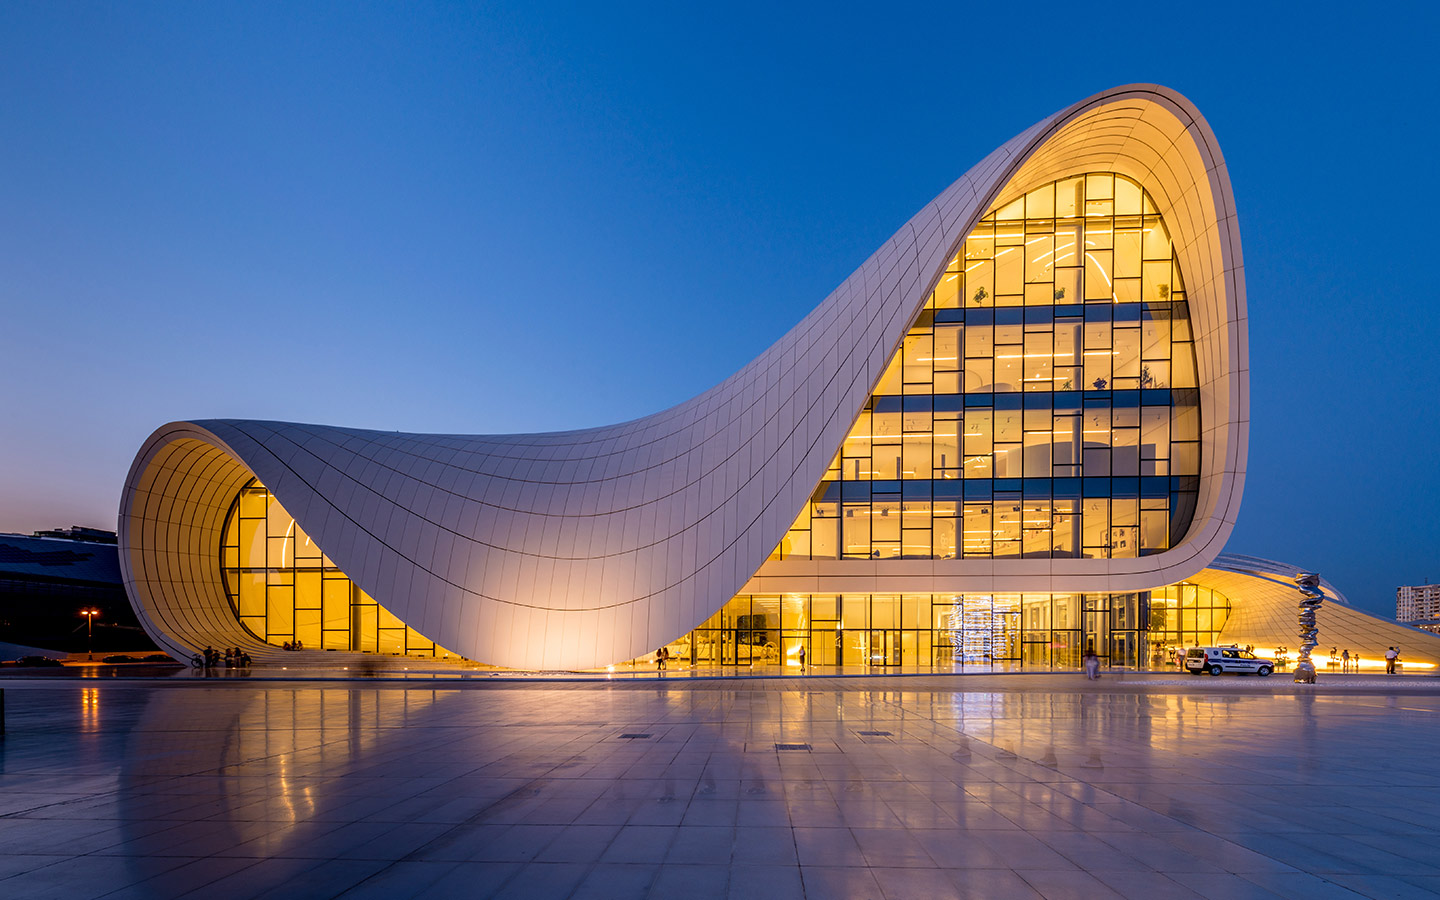 Zaha Hadid design in Baku